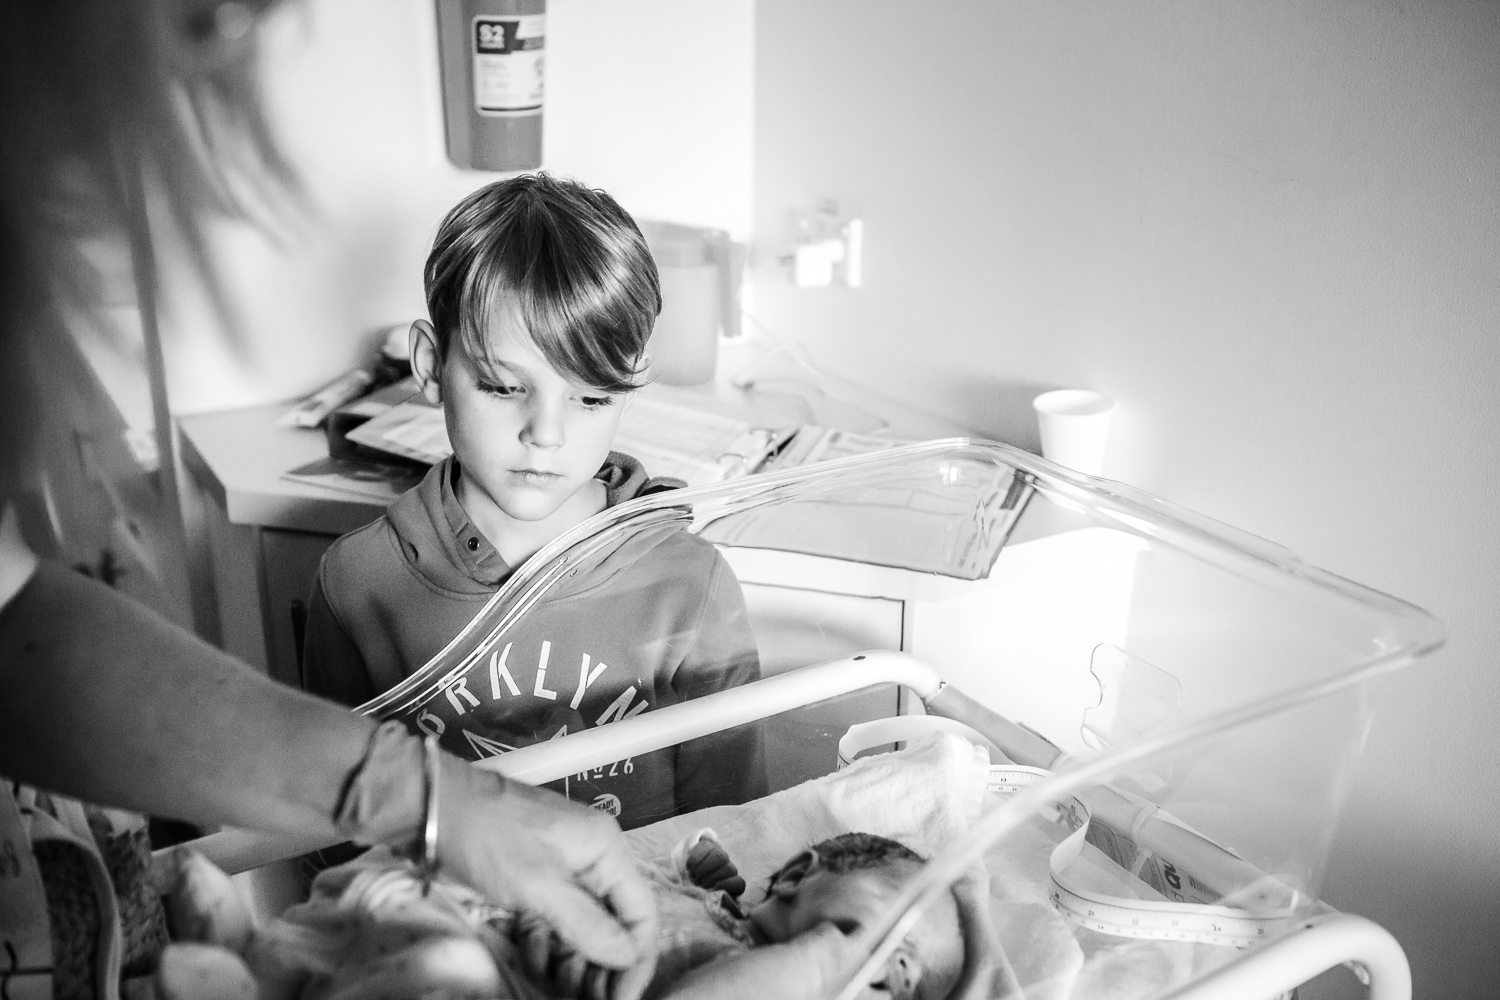 baby being dressed in hospital while brother watches on